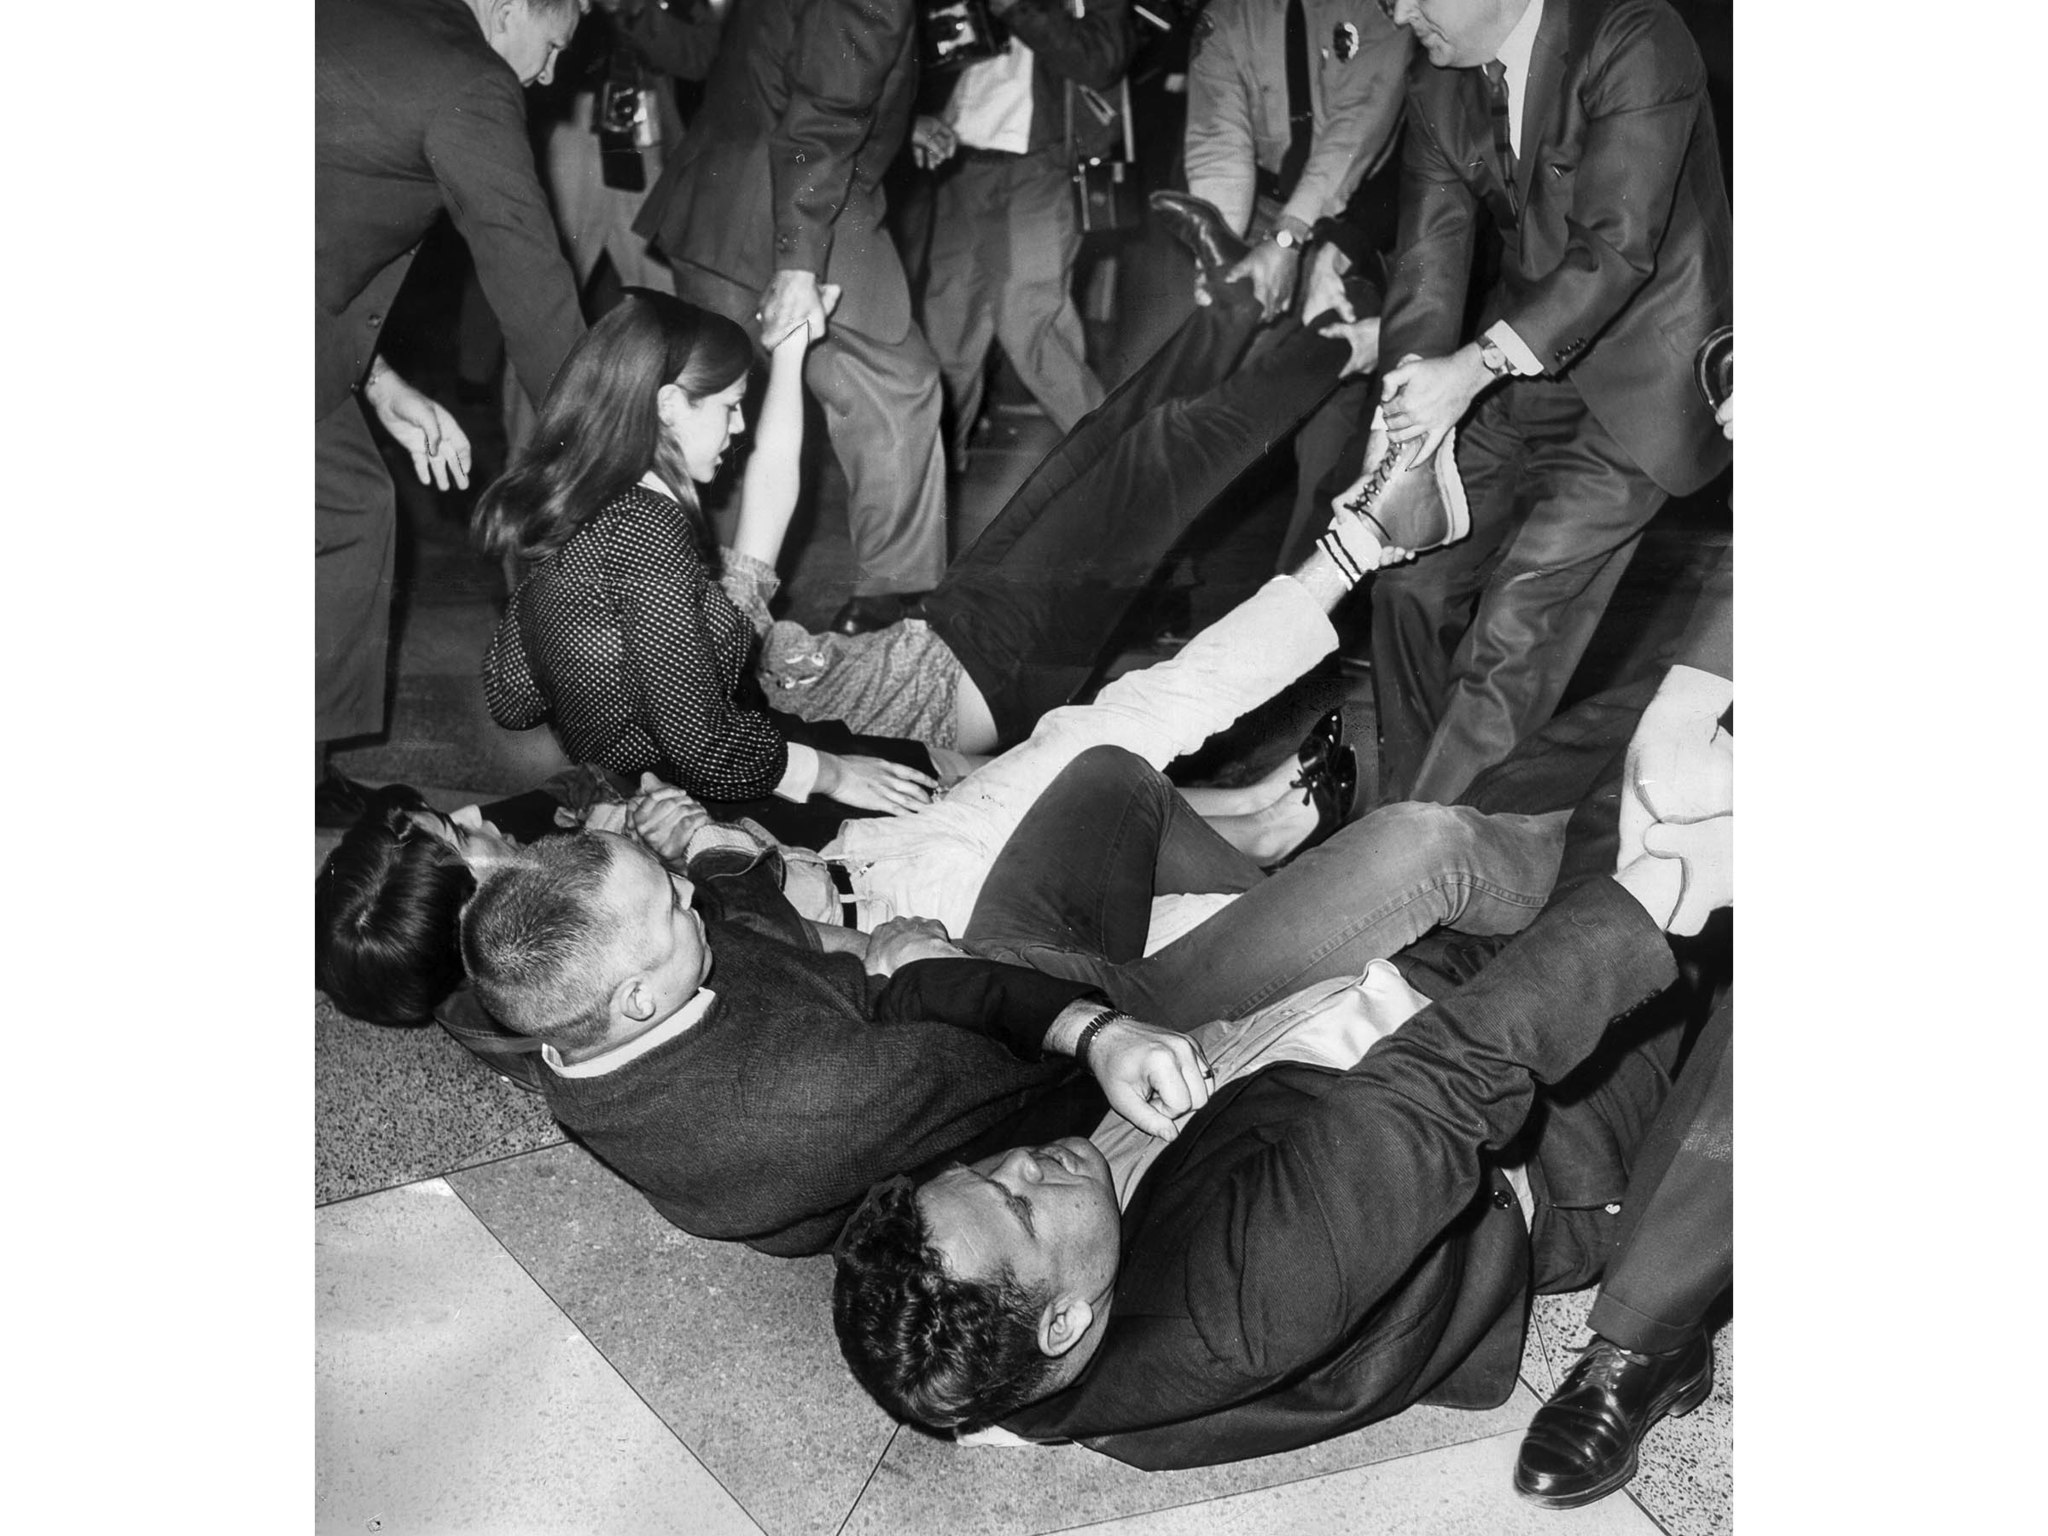 March 9, 1965: U.S. marshals drag sit-down demonstrators during melee in the lobby of the Federal Bu